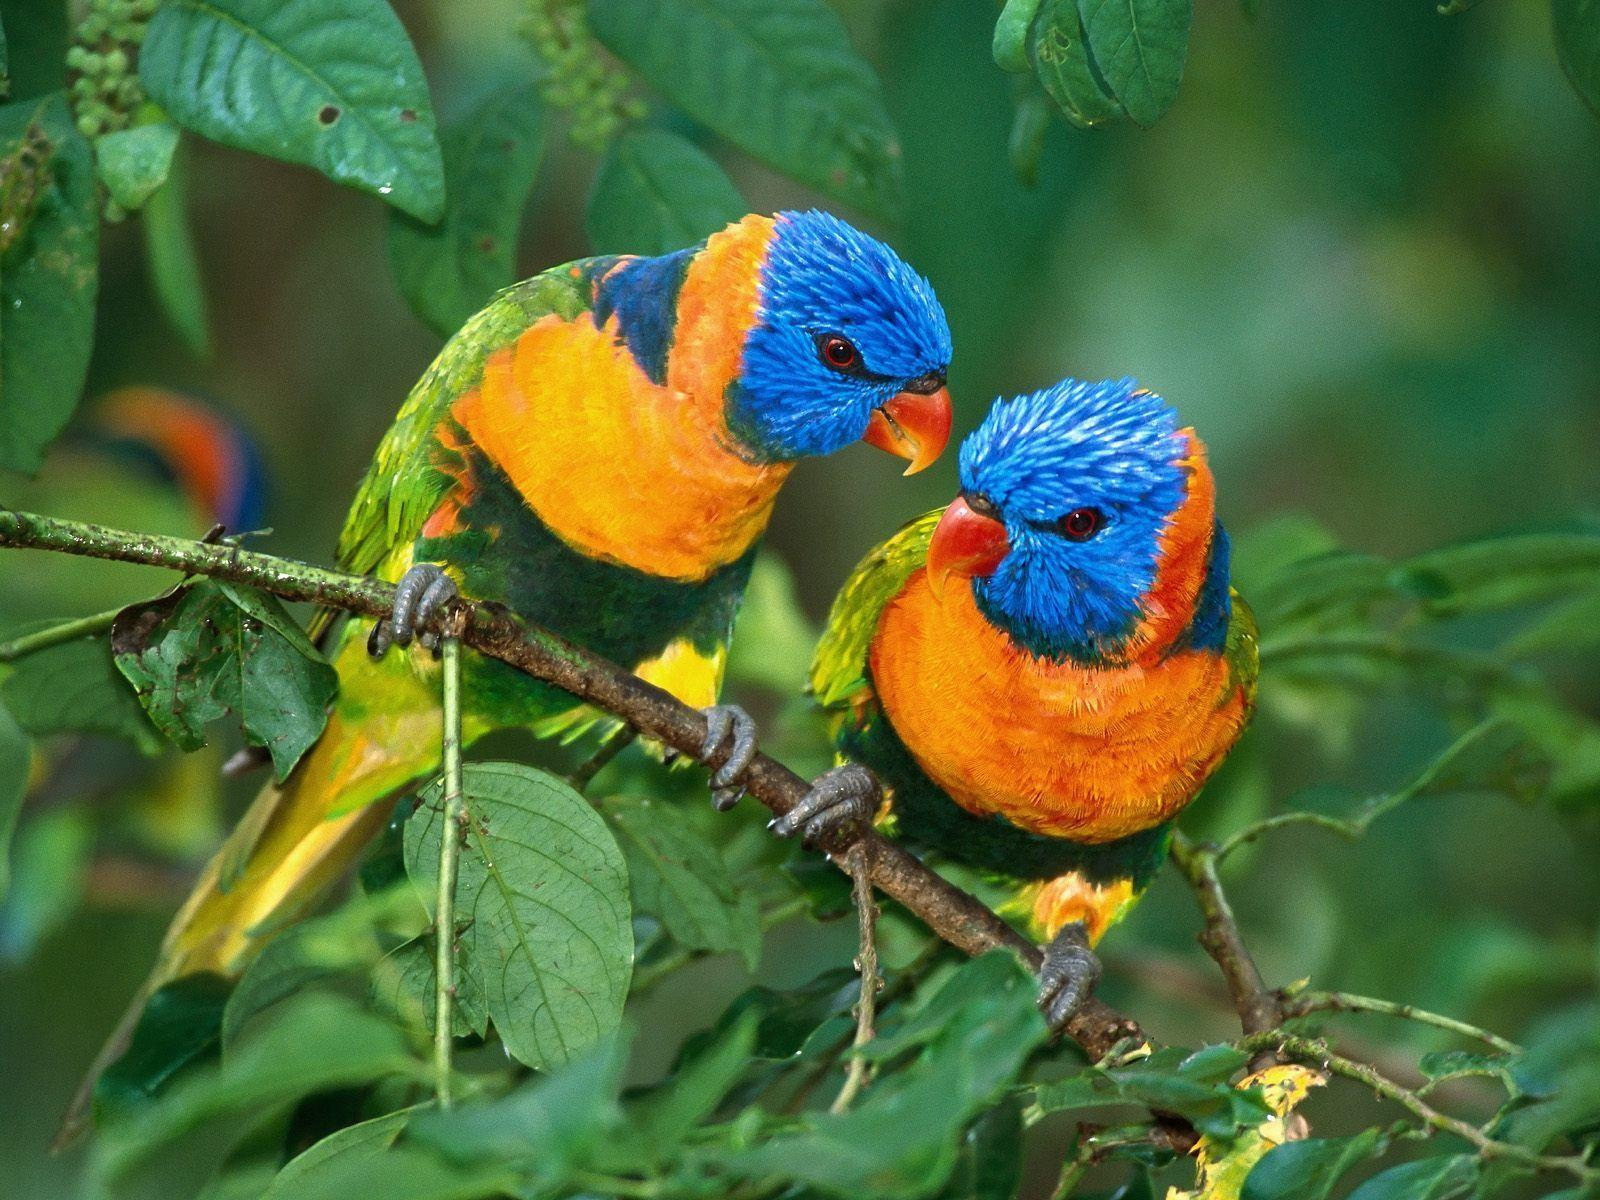 Birds hd wallpapers, bird wallpapers | Amazing Wallpapers